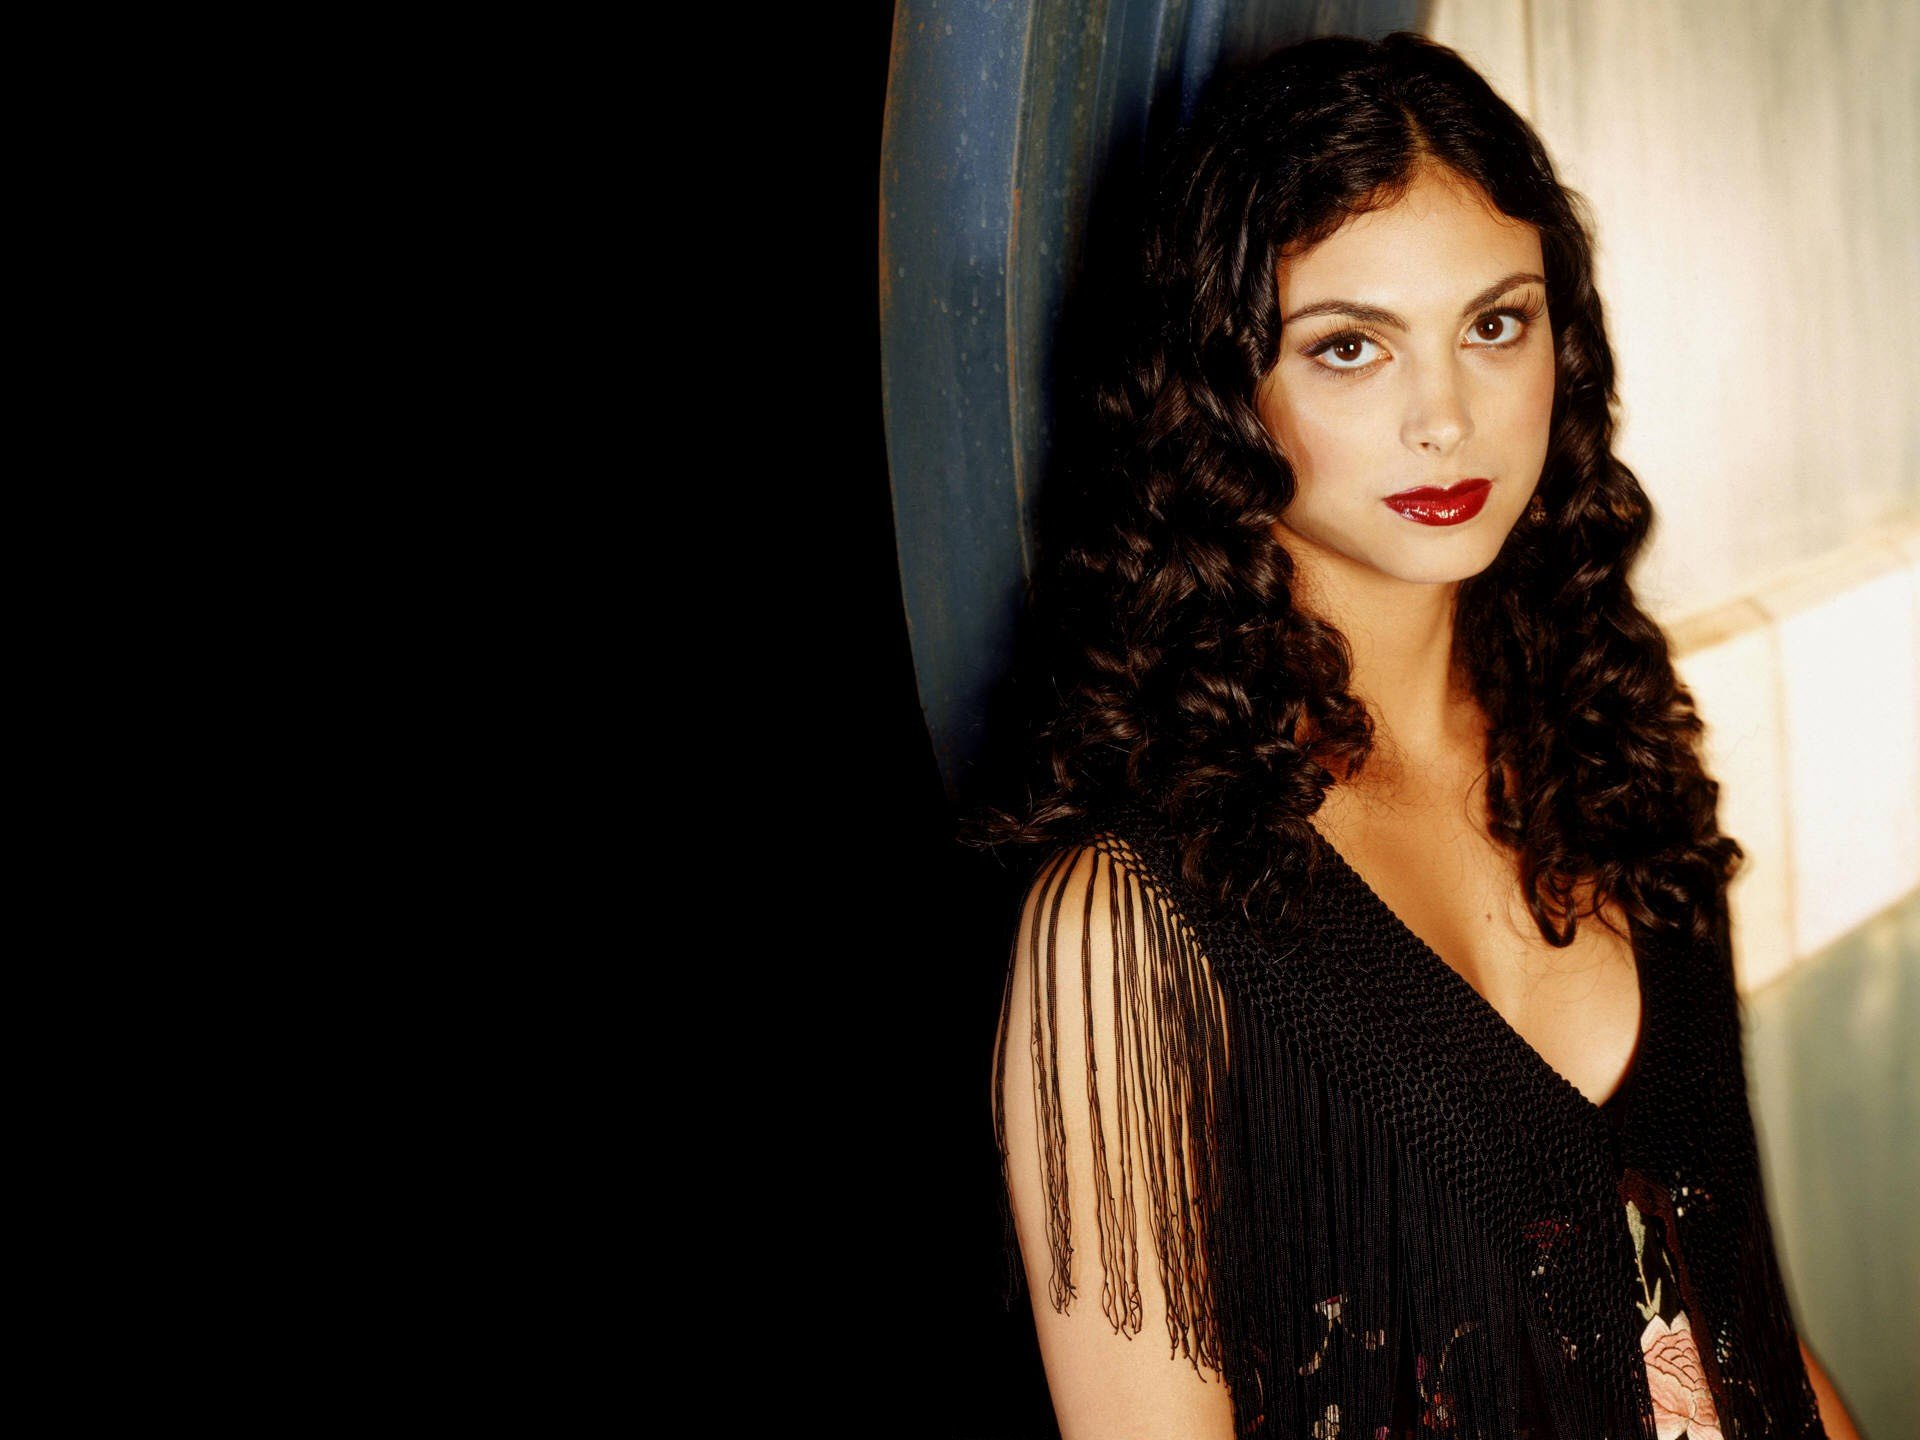 Morena Baccarin Women Actress Firefly Brunette Curly Hair Brown Eyes Long Hair Hd Wallpapers Desktop And Mobile Images Photos